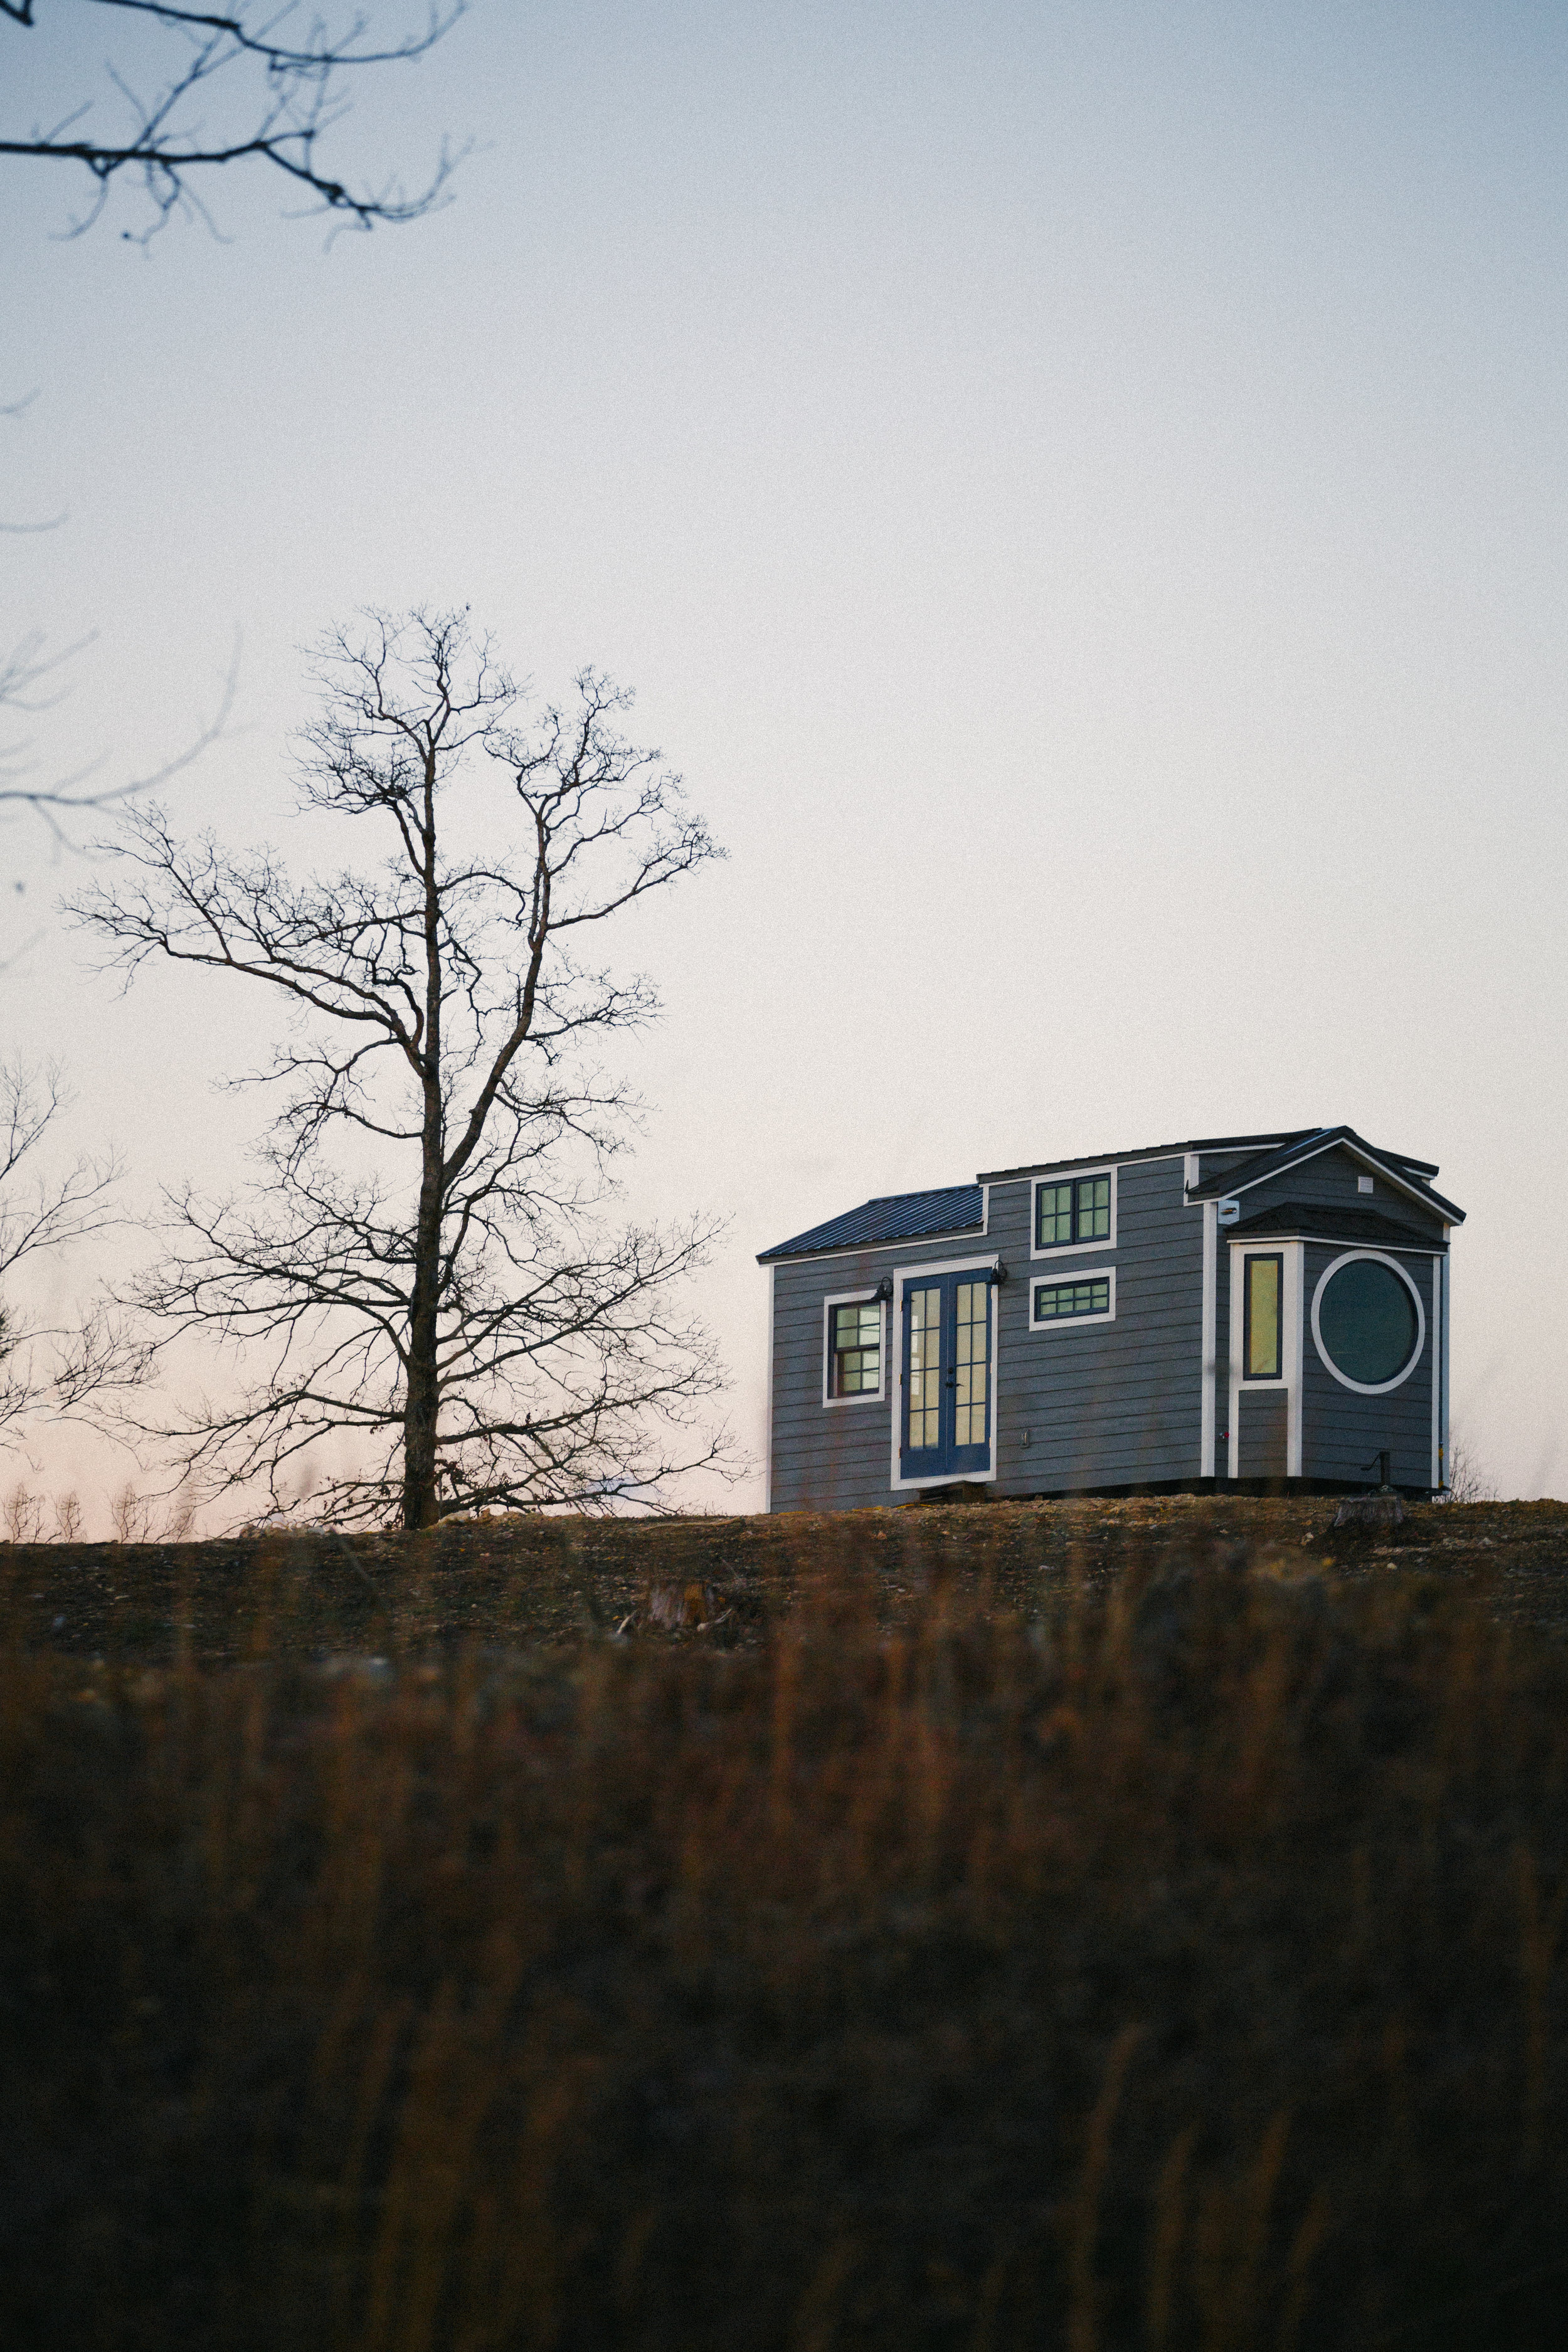 The Monocle by Wind River Tiny Homes - LP smartside, metal roof, 10 foot wide design